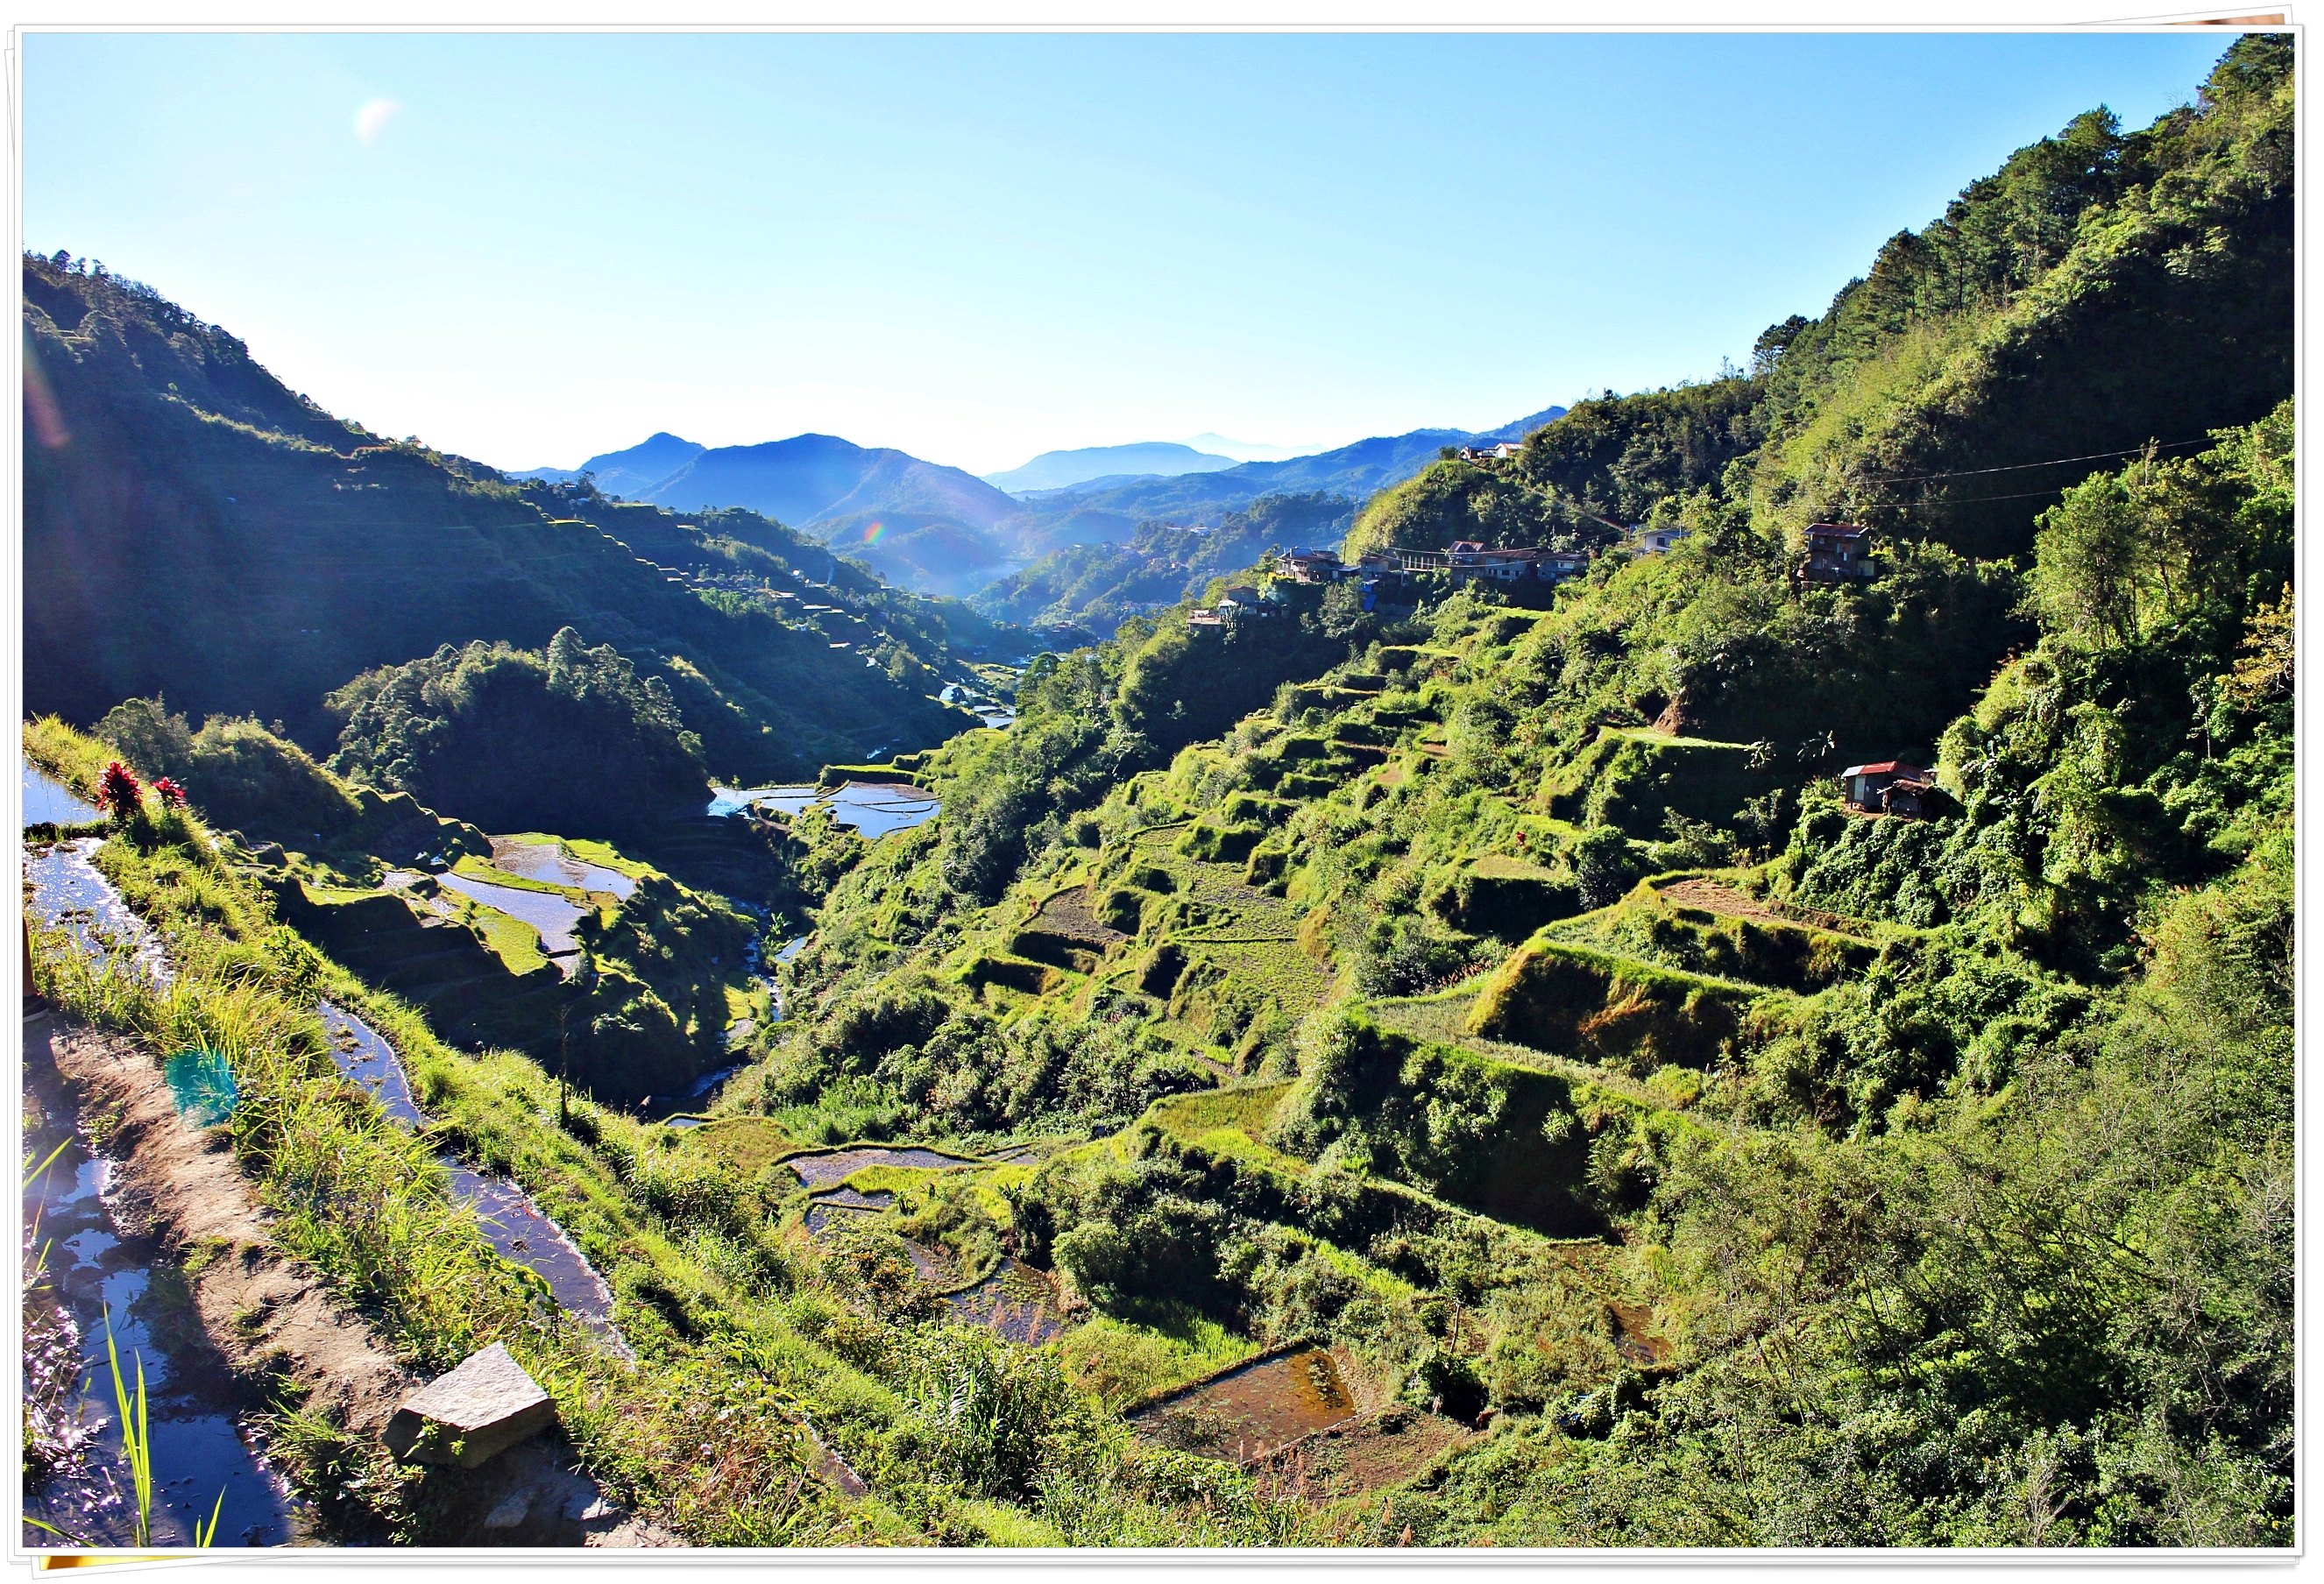 02_2015 PhilTrip - Banaue Rice Terraces